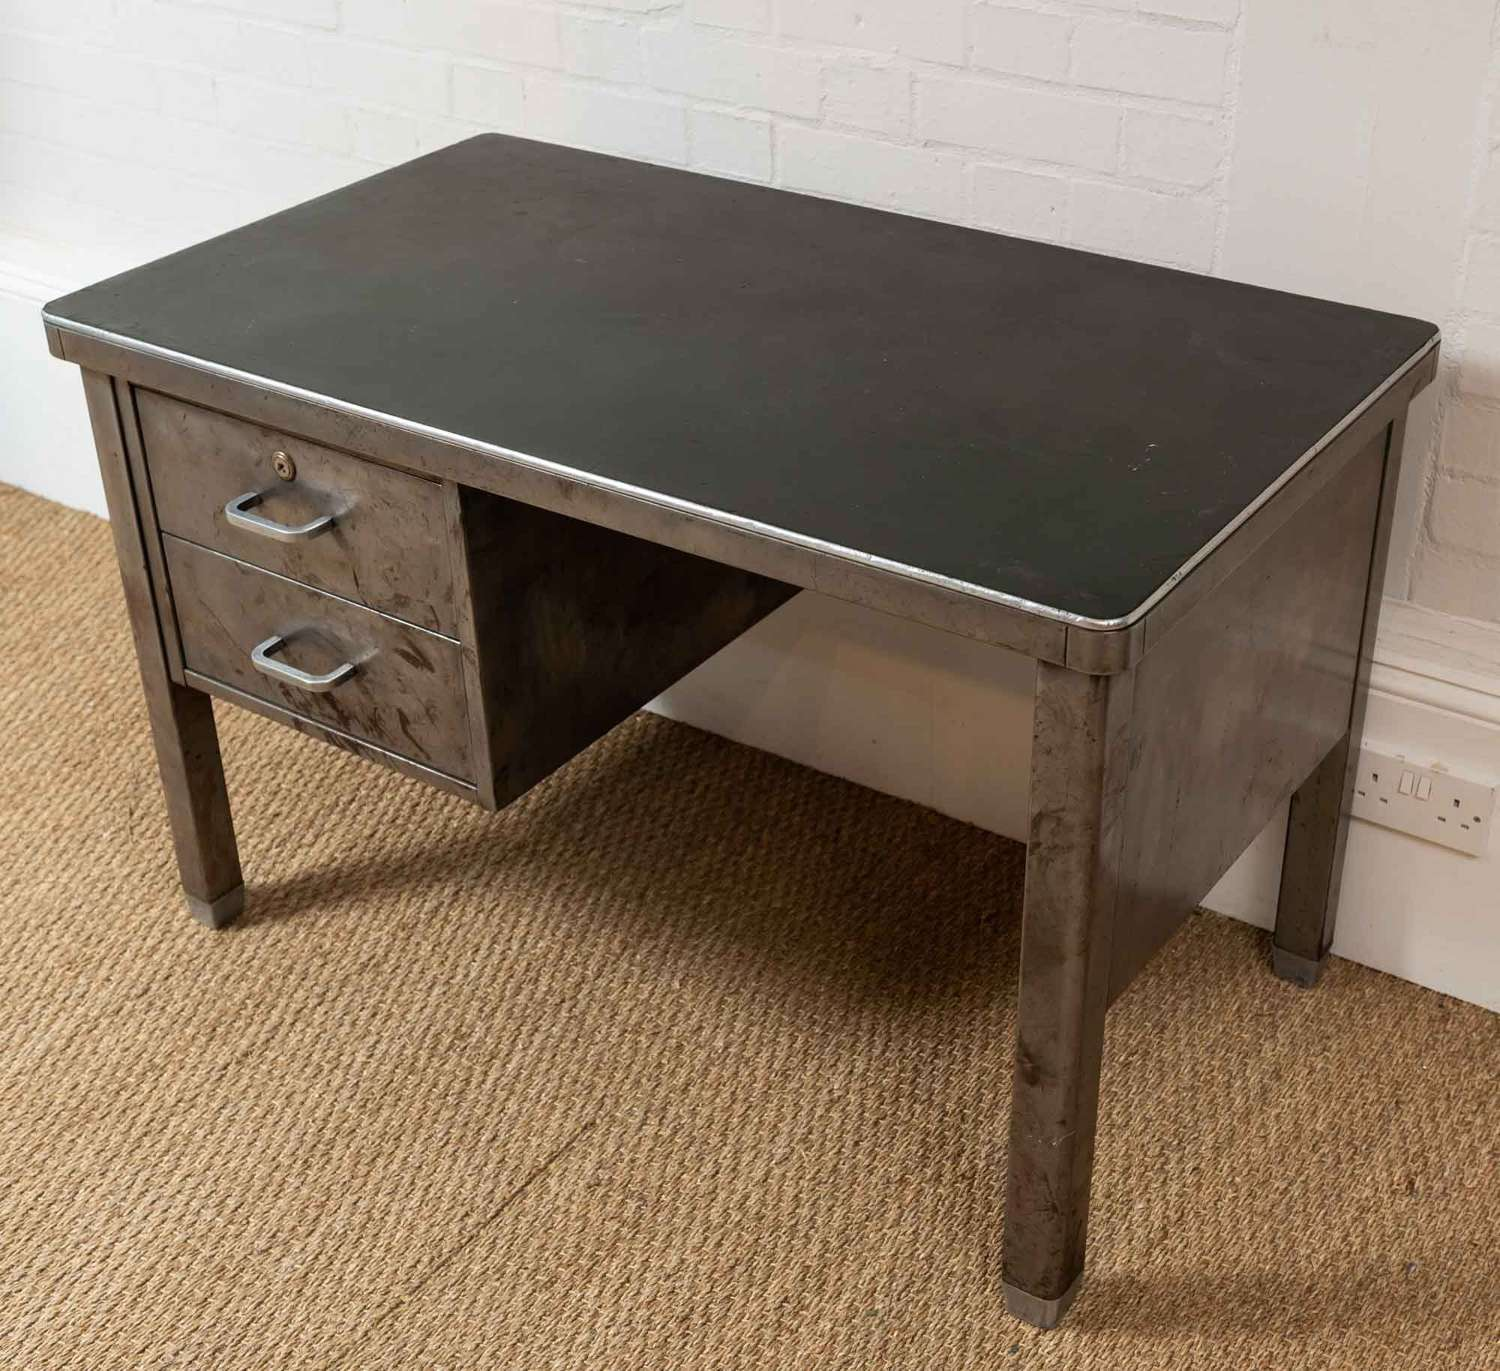 1950s french industrial desk